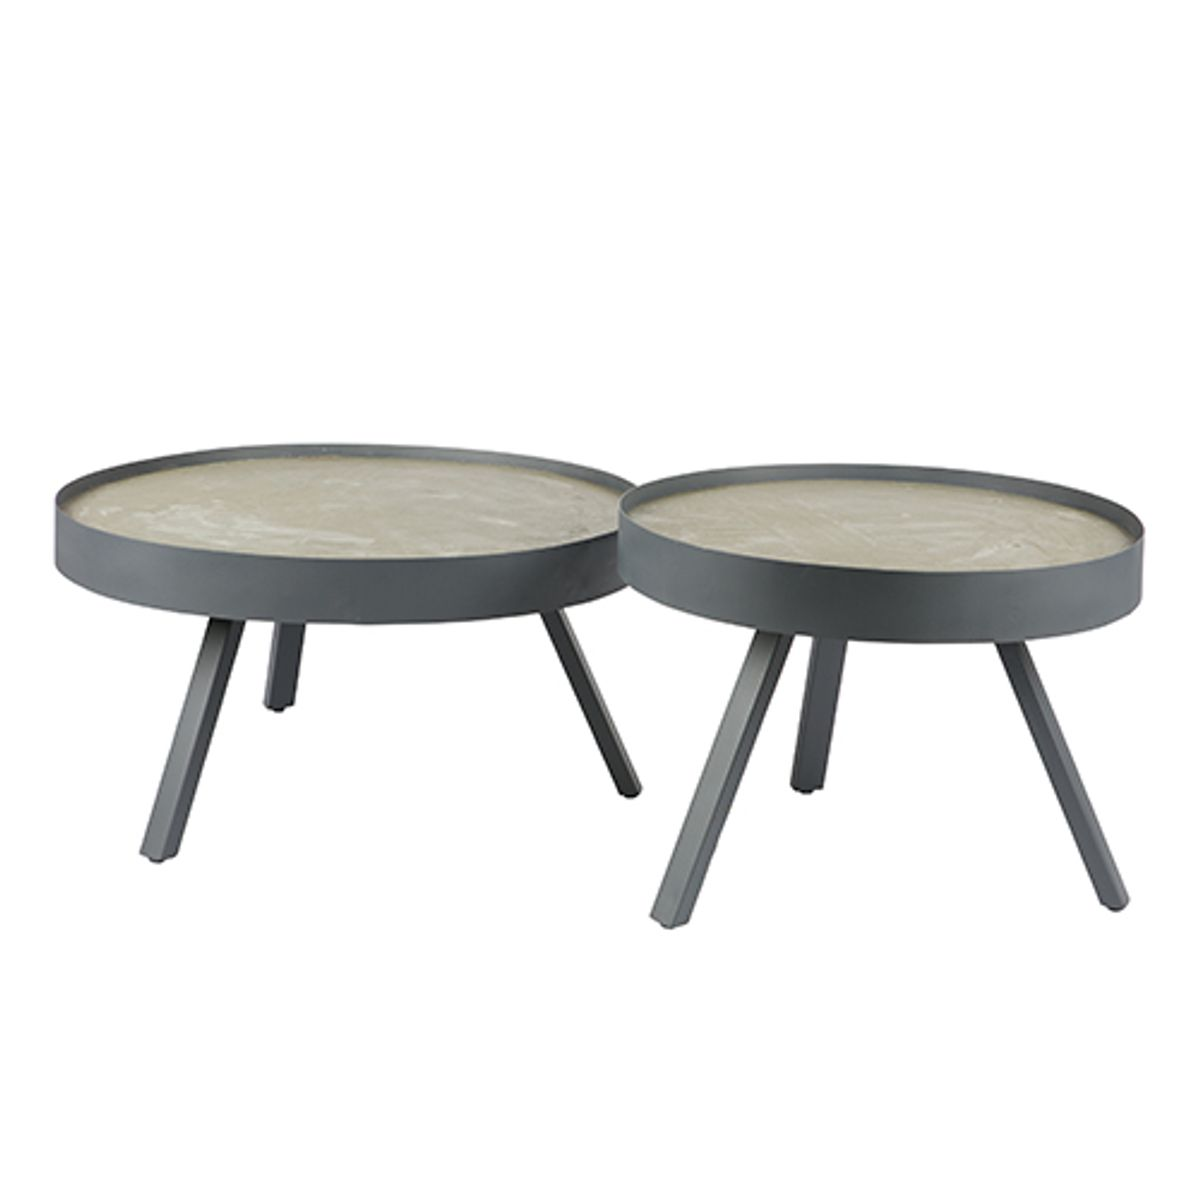 table basse ronde tripod grise avec plateau en b ton skip. Black Bedroom Furniture Sets. Home Design Ideas